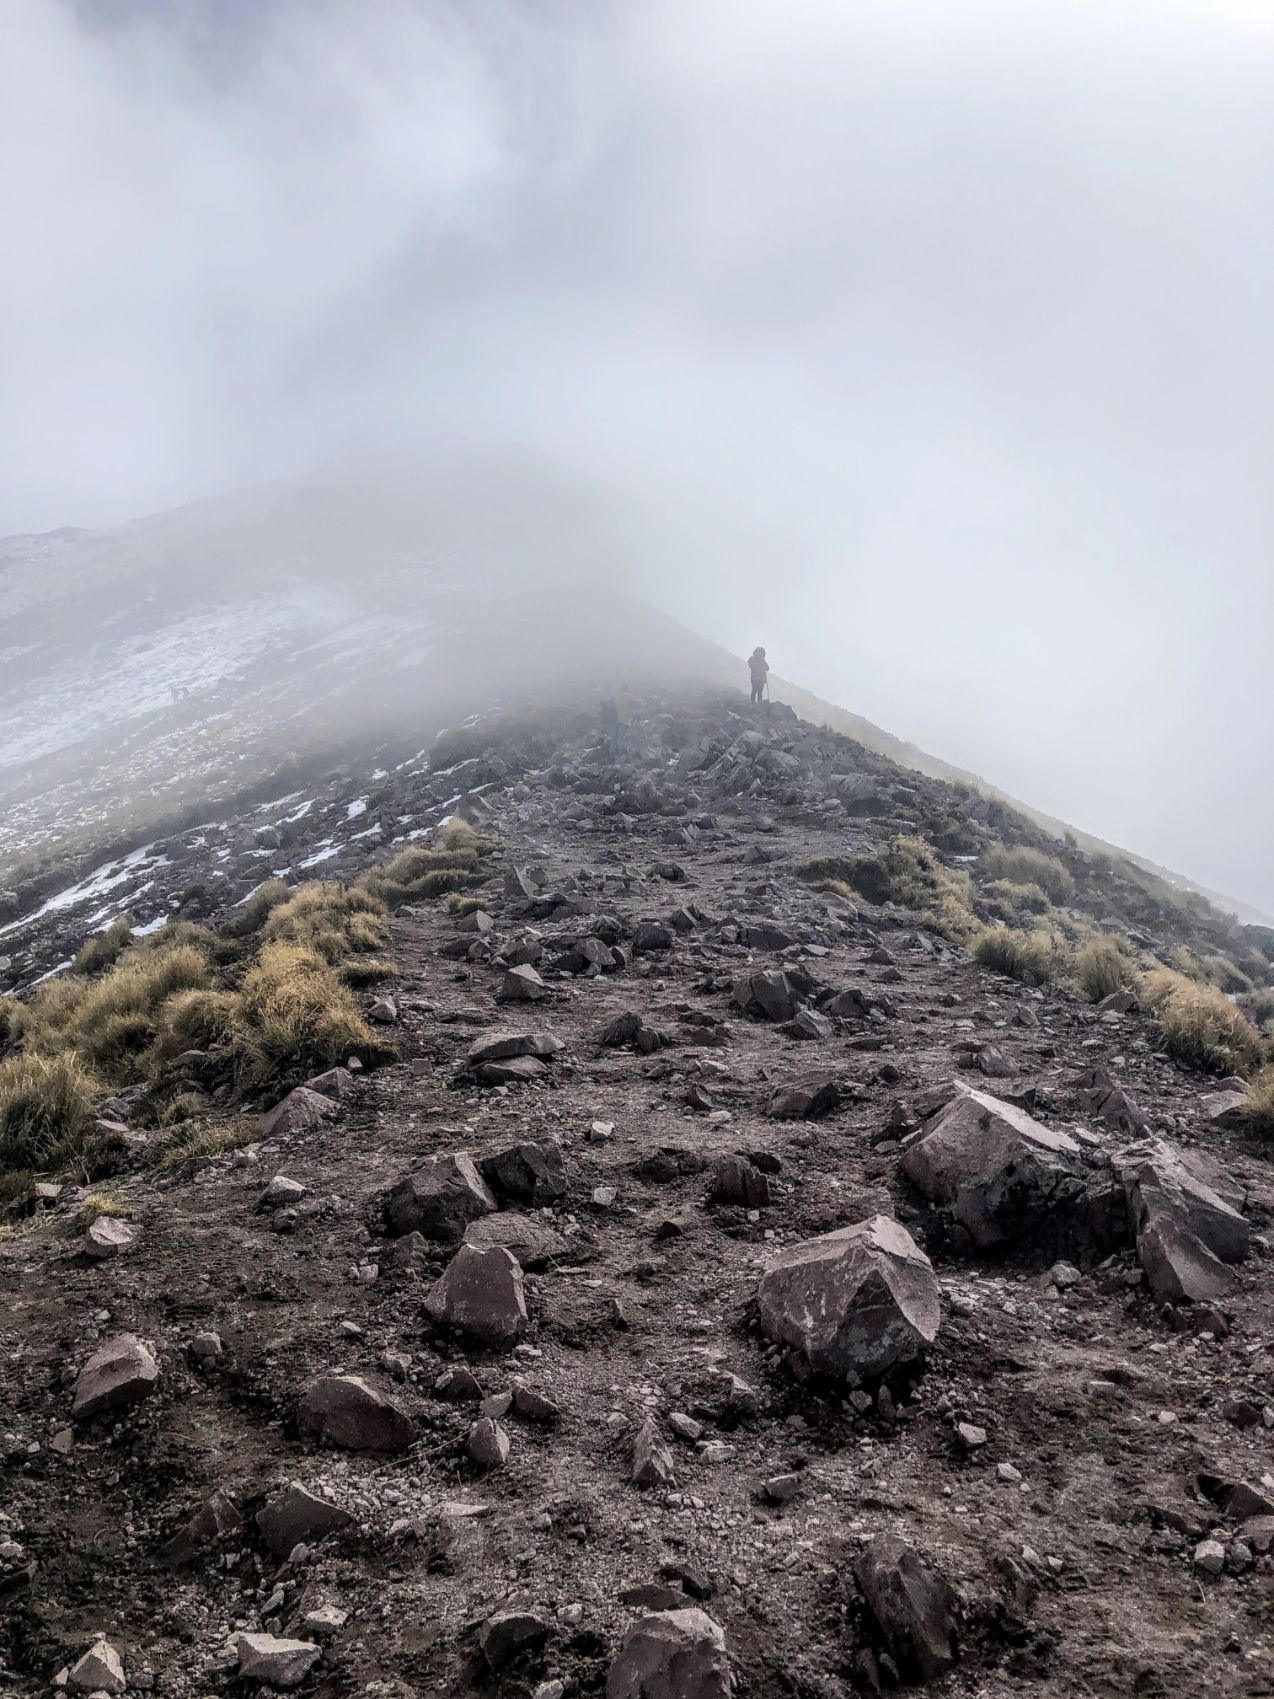 silhouetted climber in the mist on Malinche Volcano